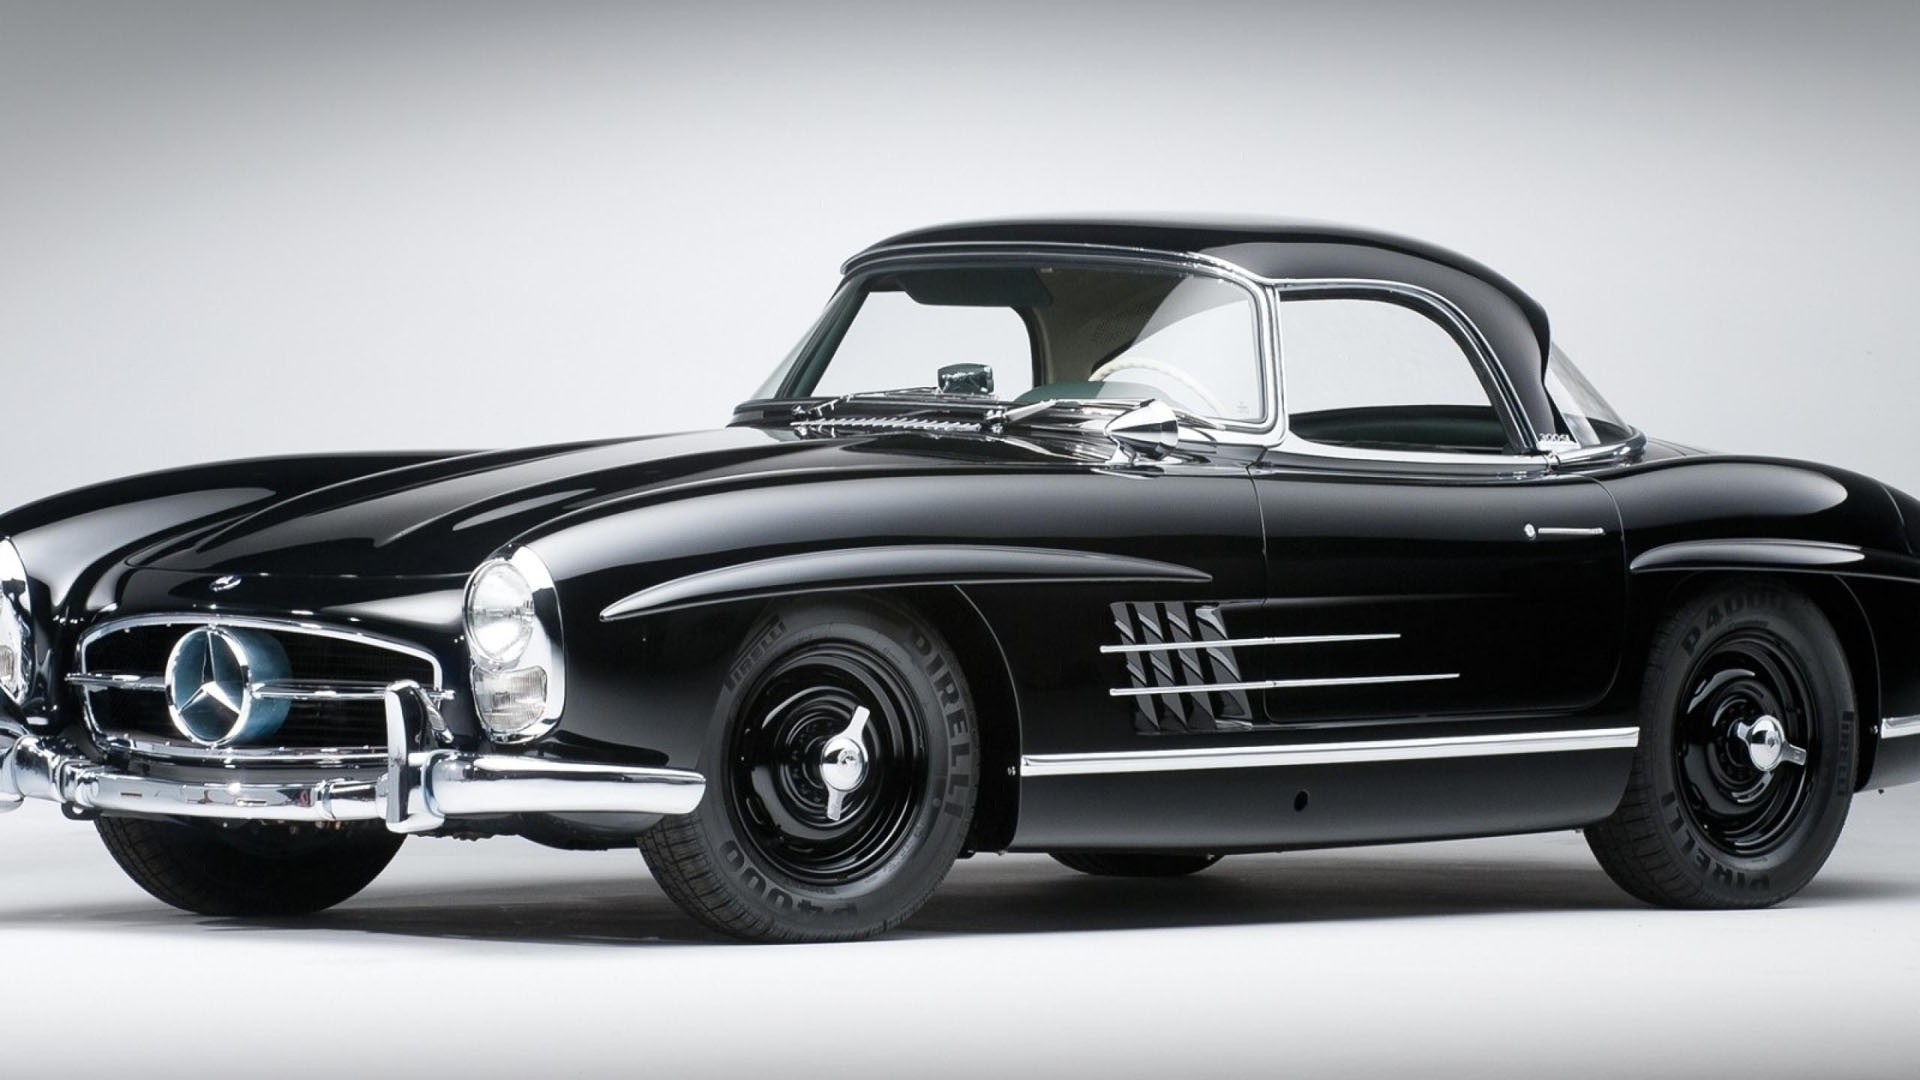 Res: 1920x1080, classic-car-wallpapers-hd-resolution